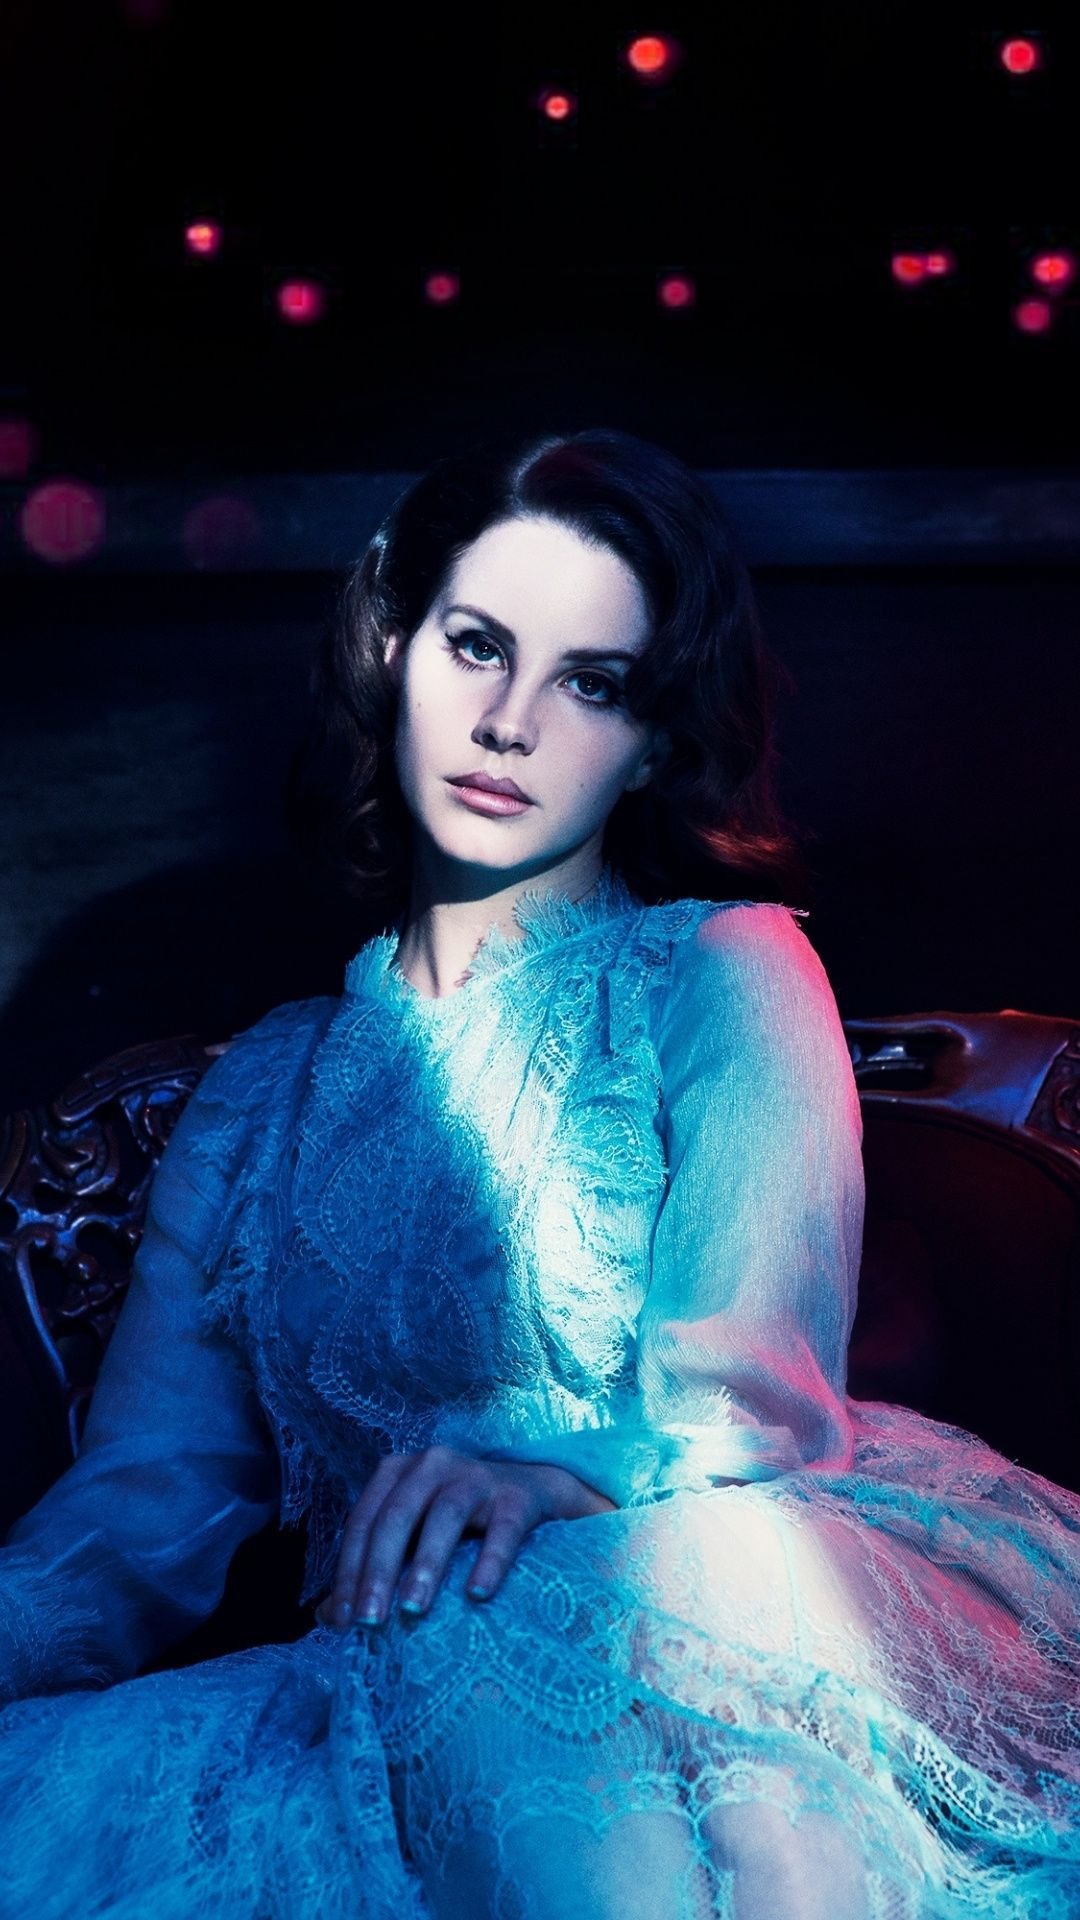 Fashion Magazine Wallpaper Mobile in 2020 Lana del rey